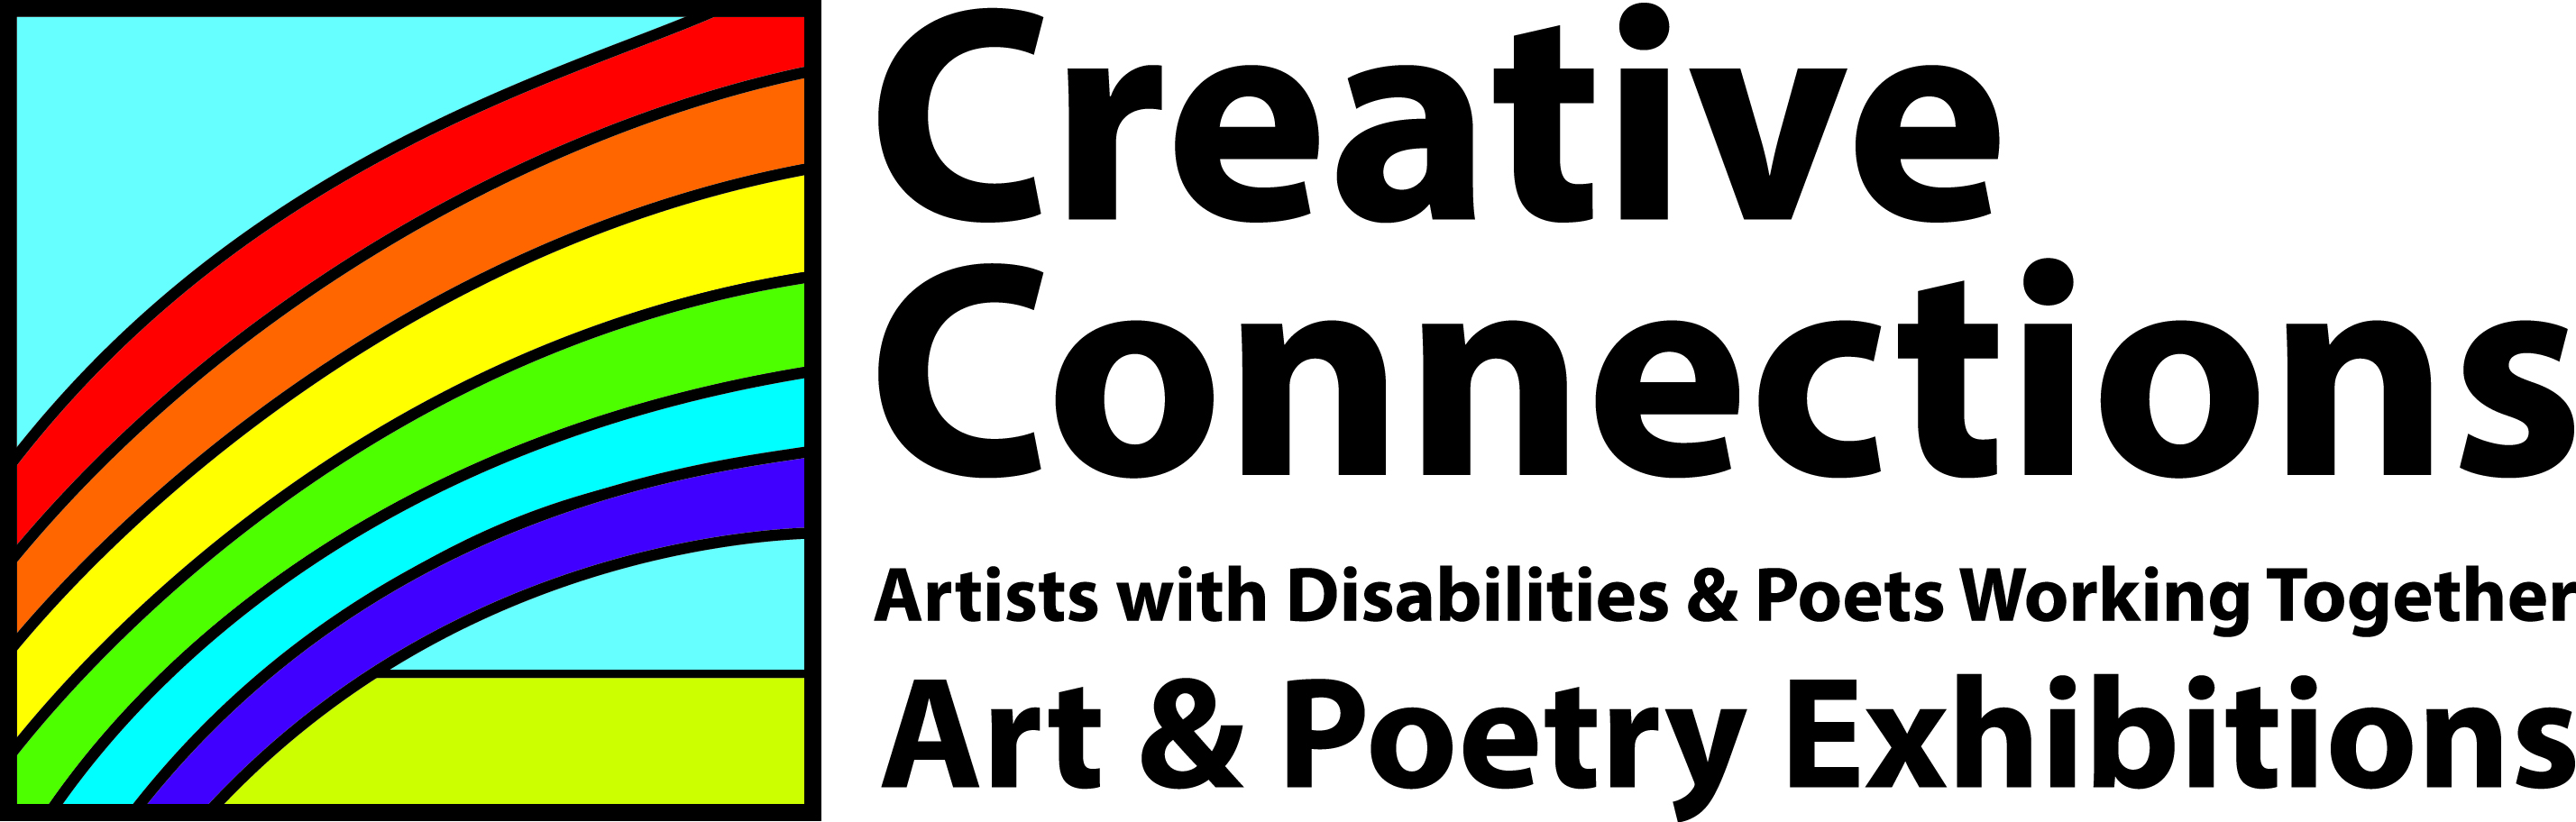 Creative Connections LogoFinal